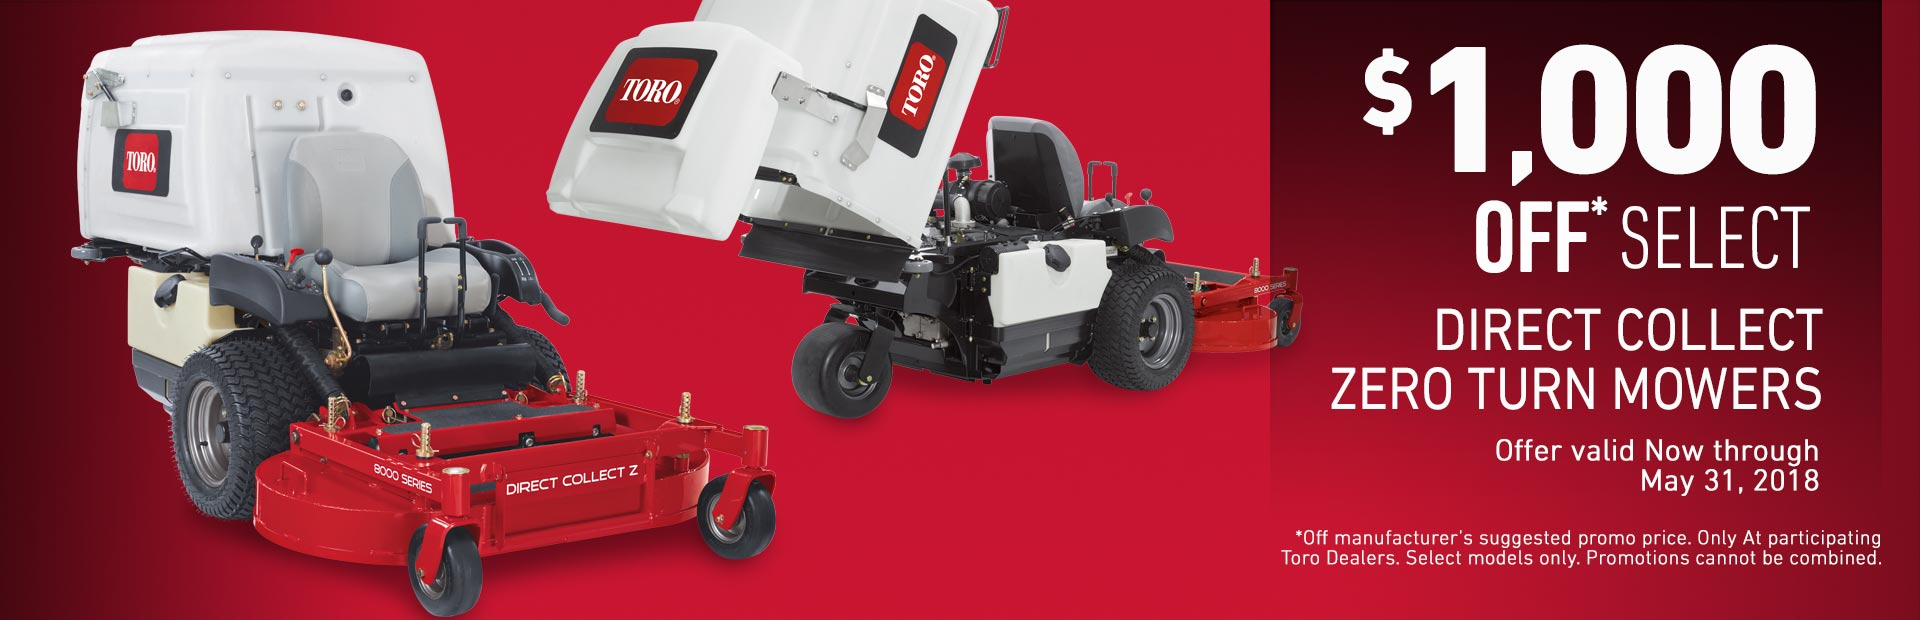 Toro: $1000 off 8000 Series Direct Collect